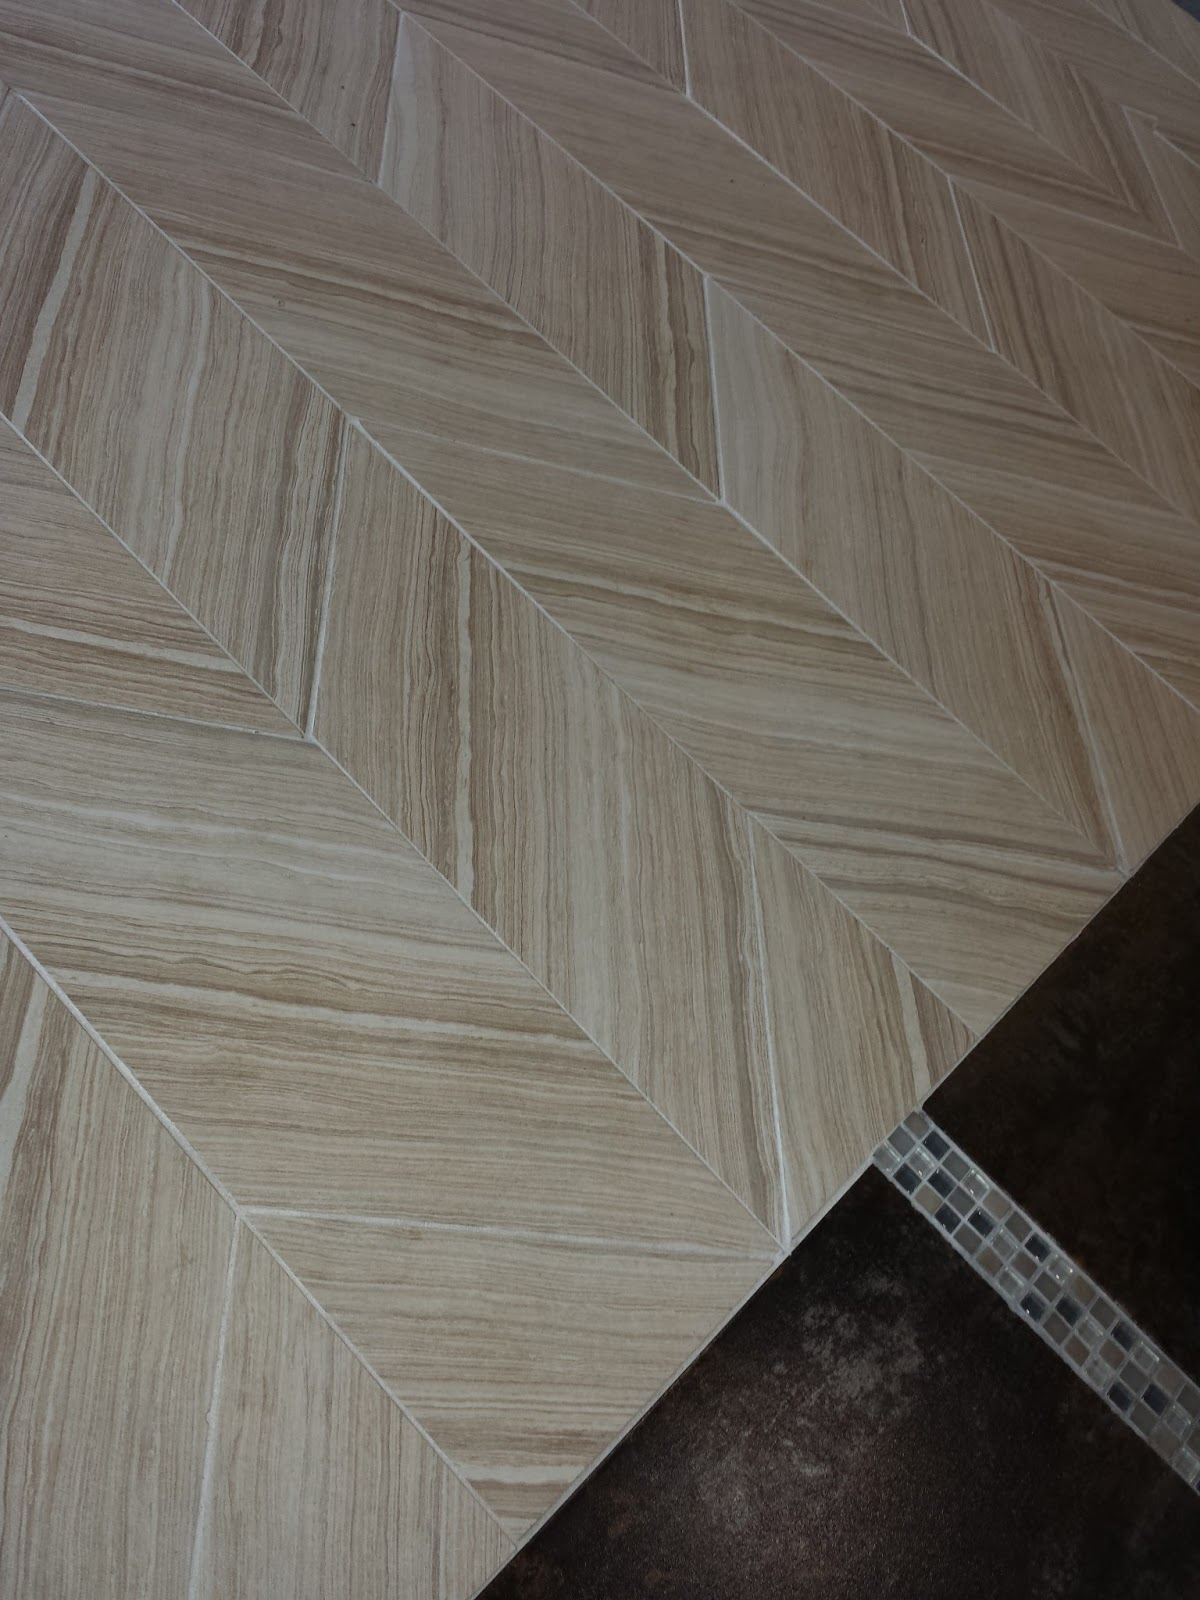 how to cut outlets in porcelain tile